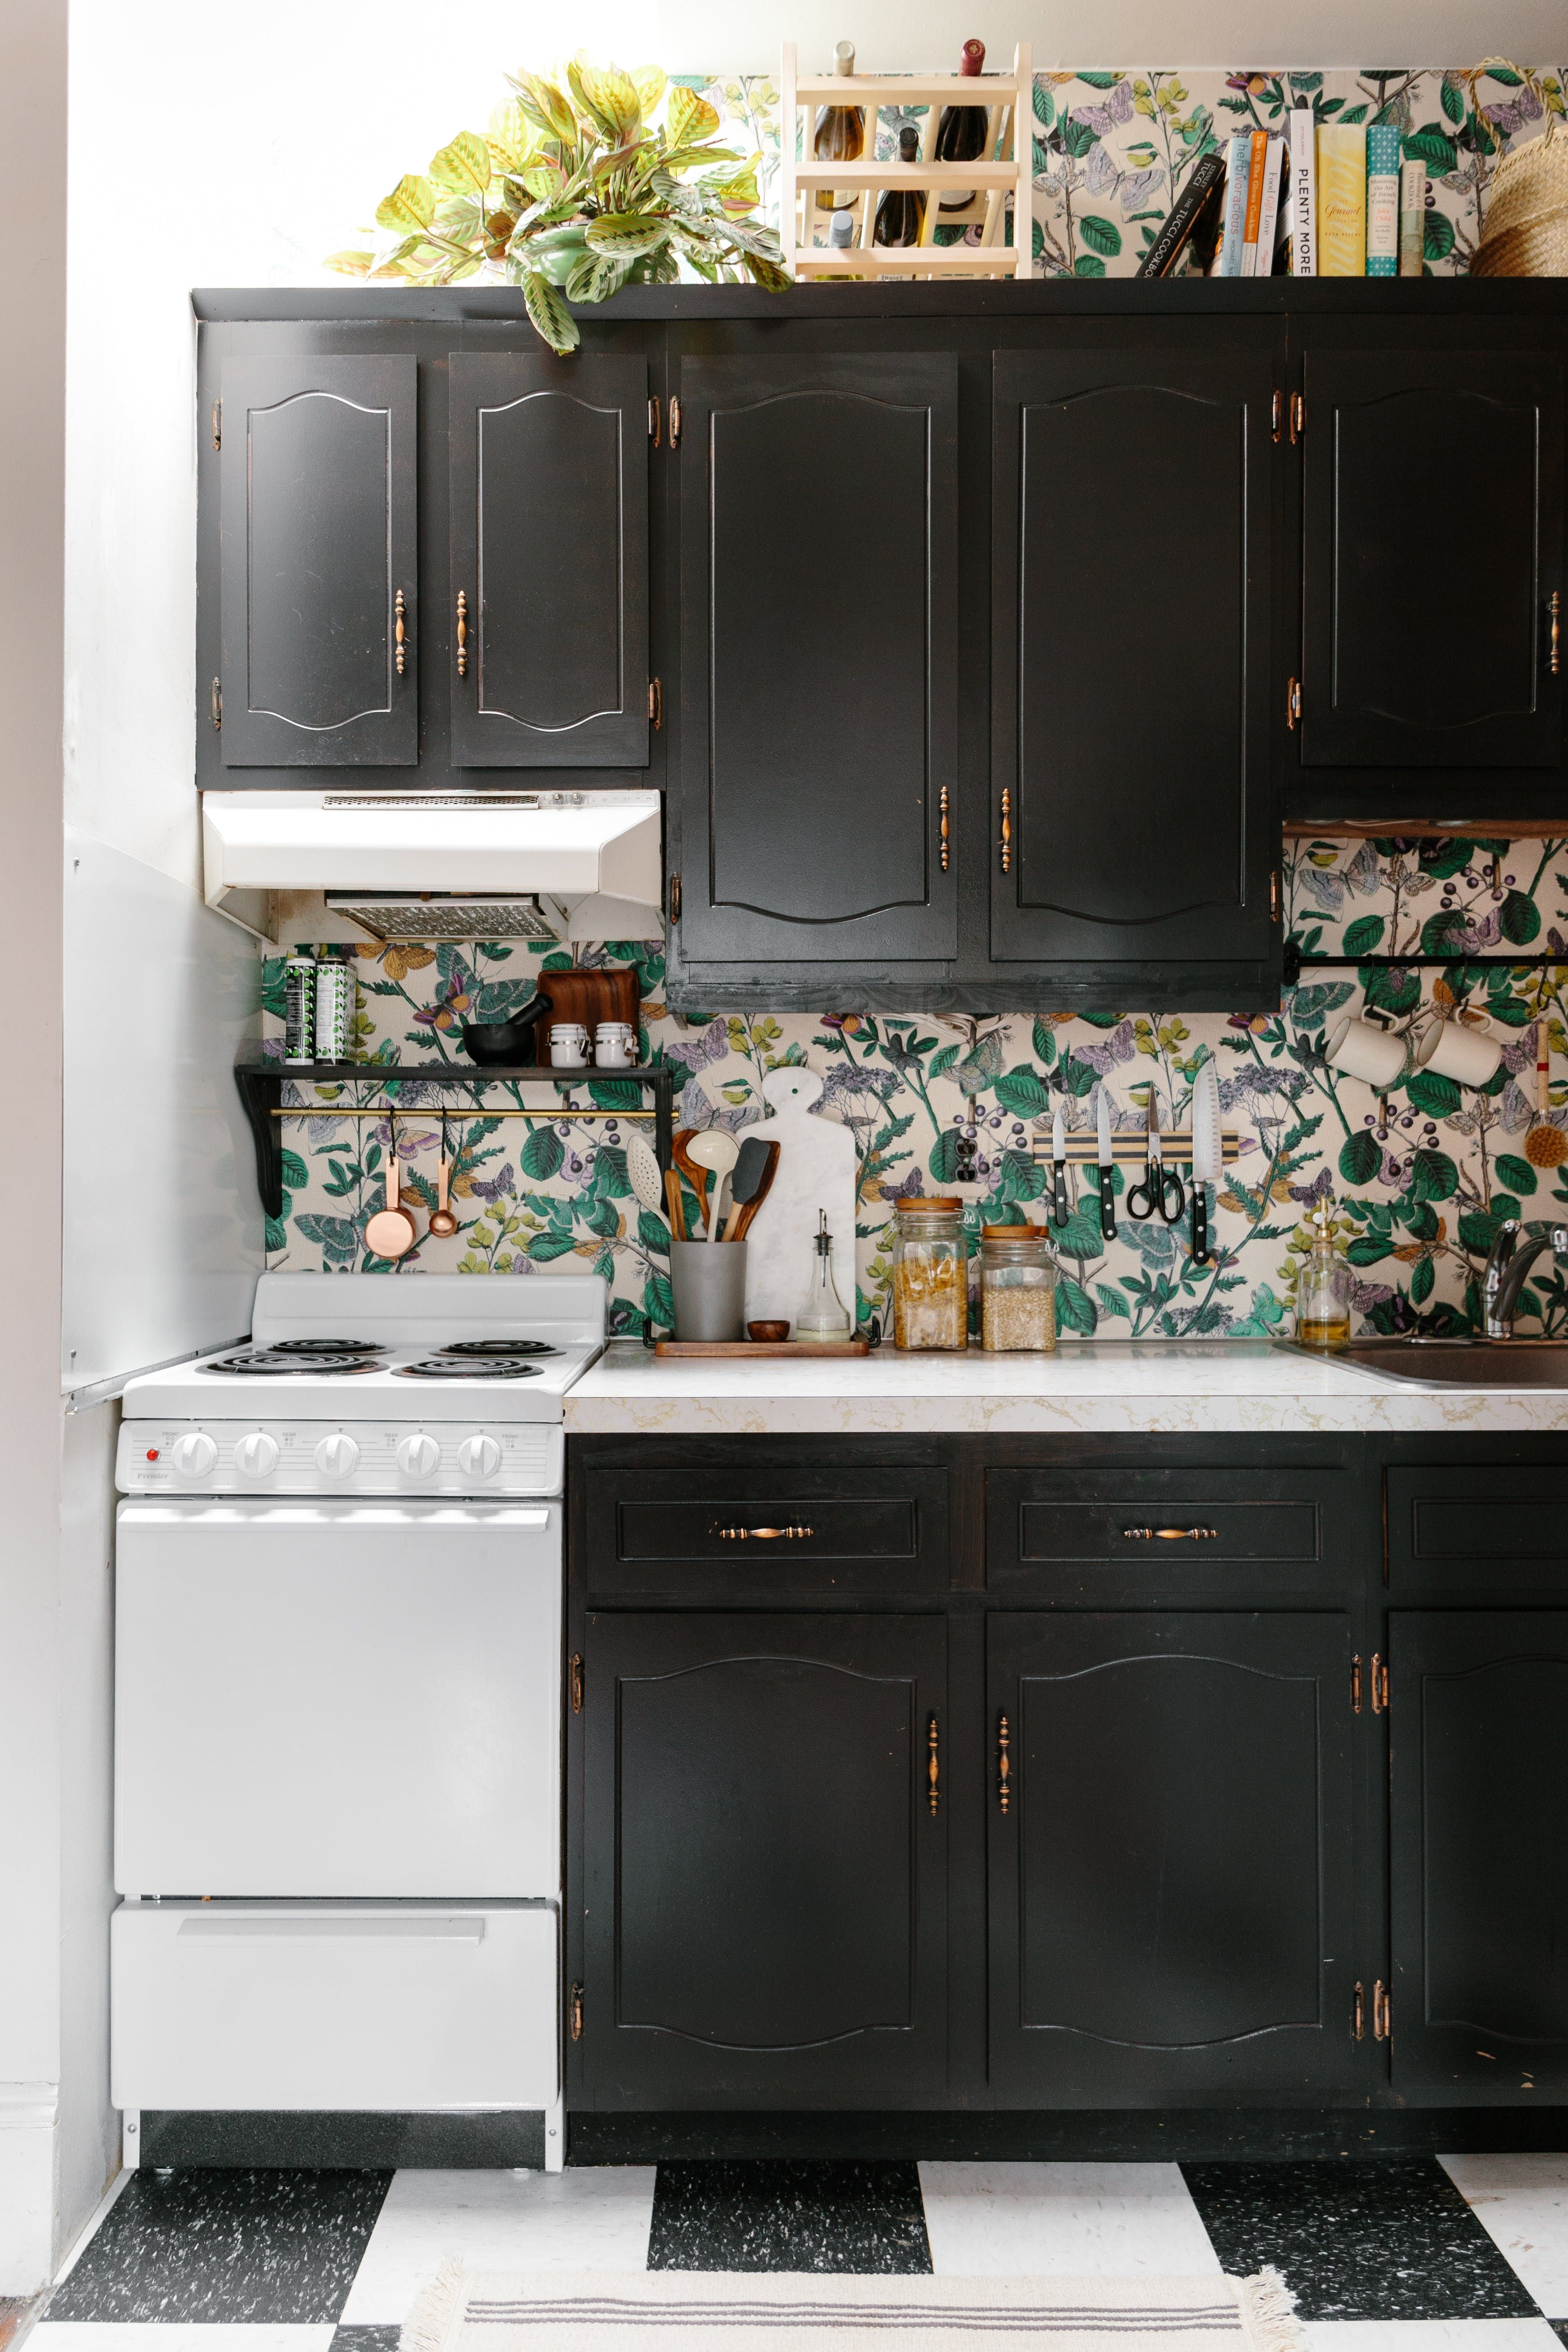 Rental Apartment Kitchen Ideas 9 Renters Solutions For An Ugly Or Just Boring Backsplash